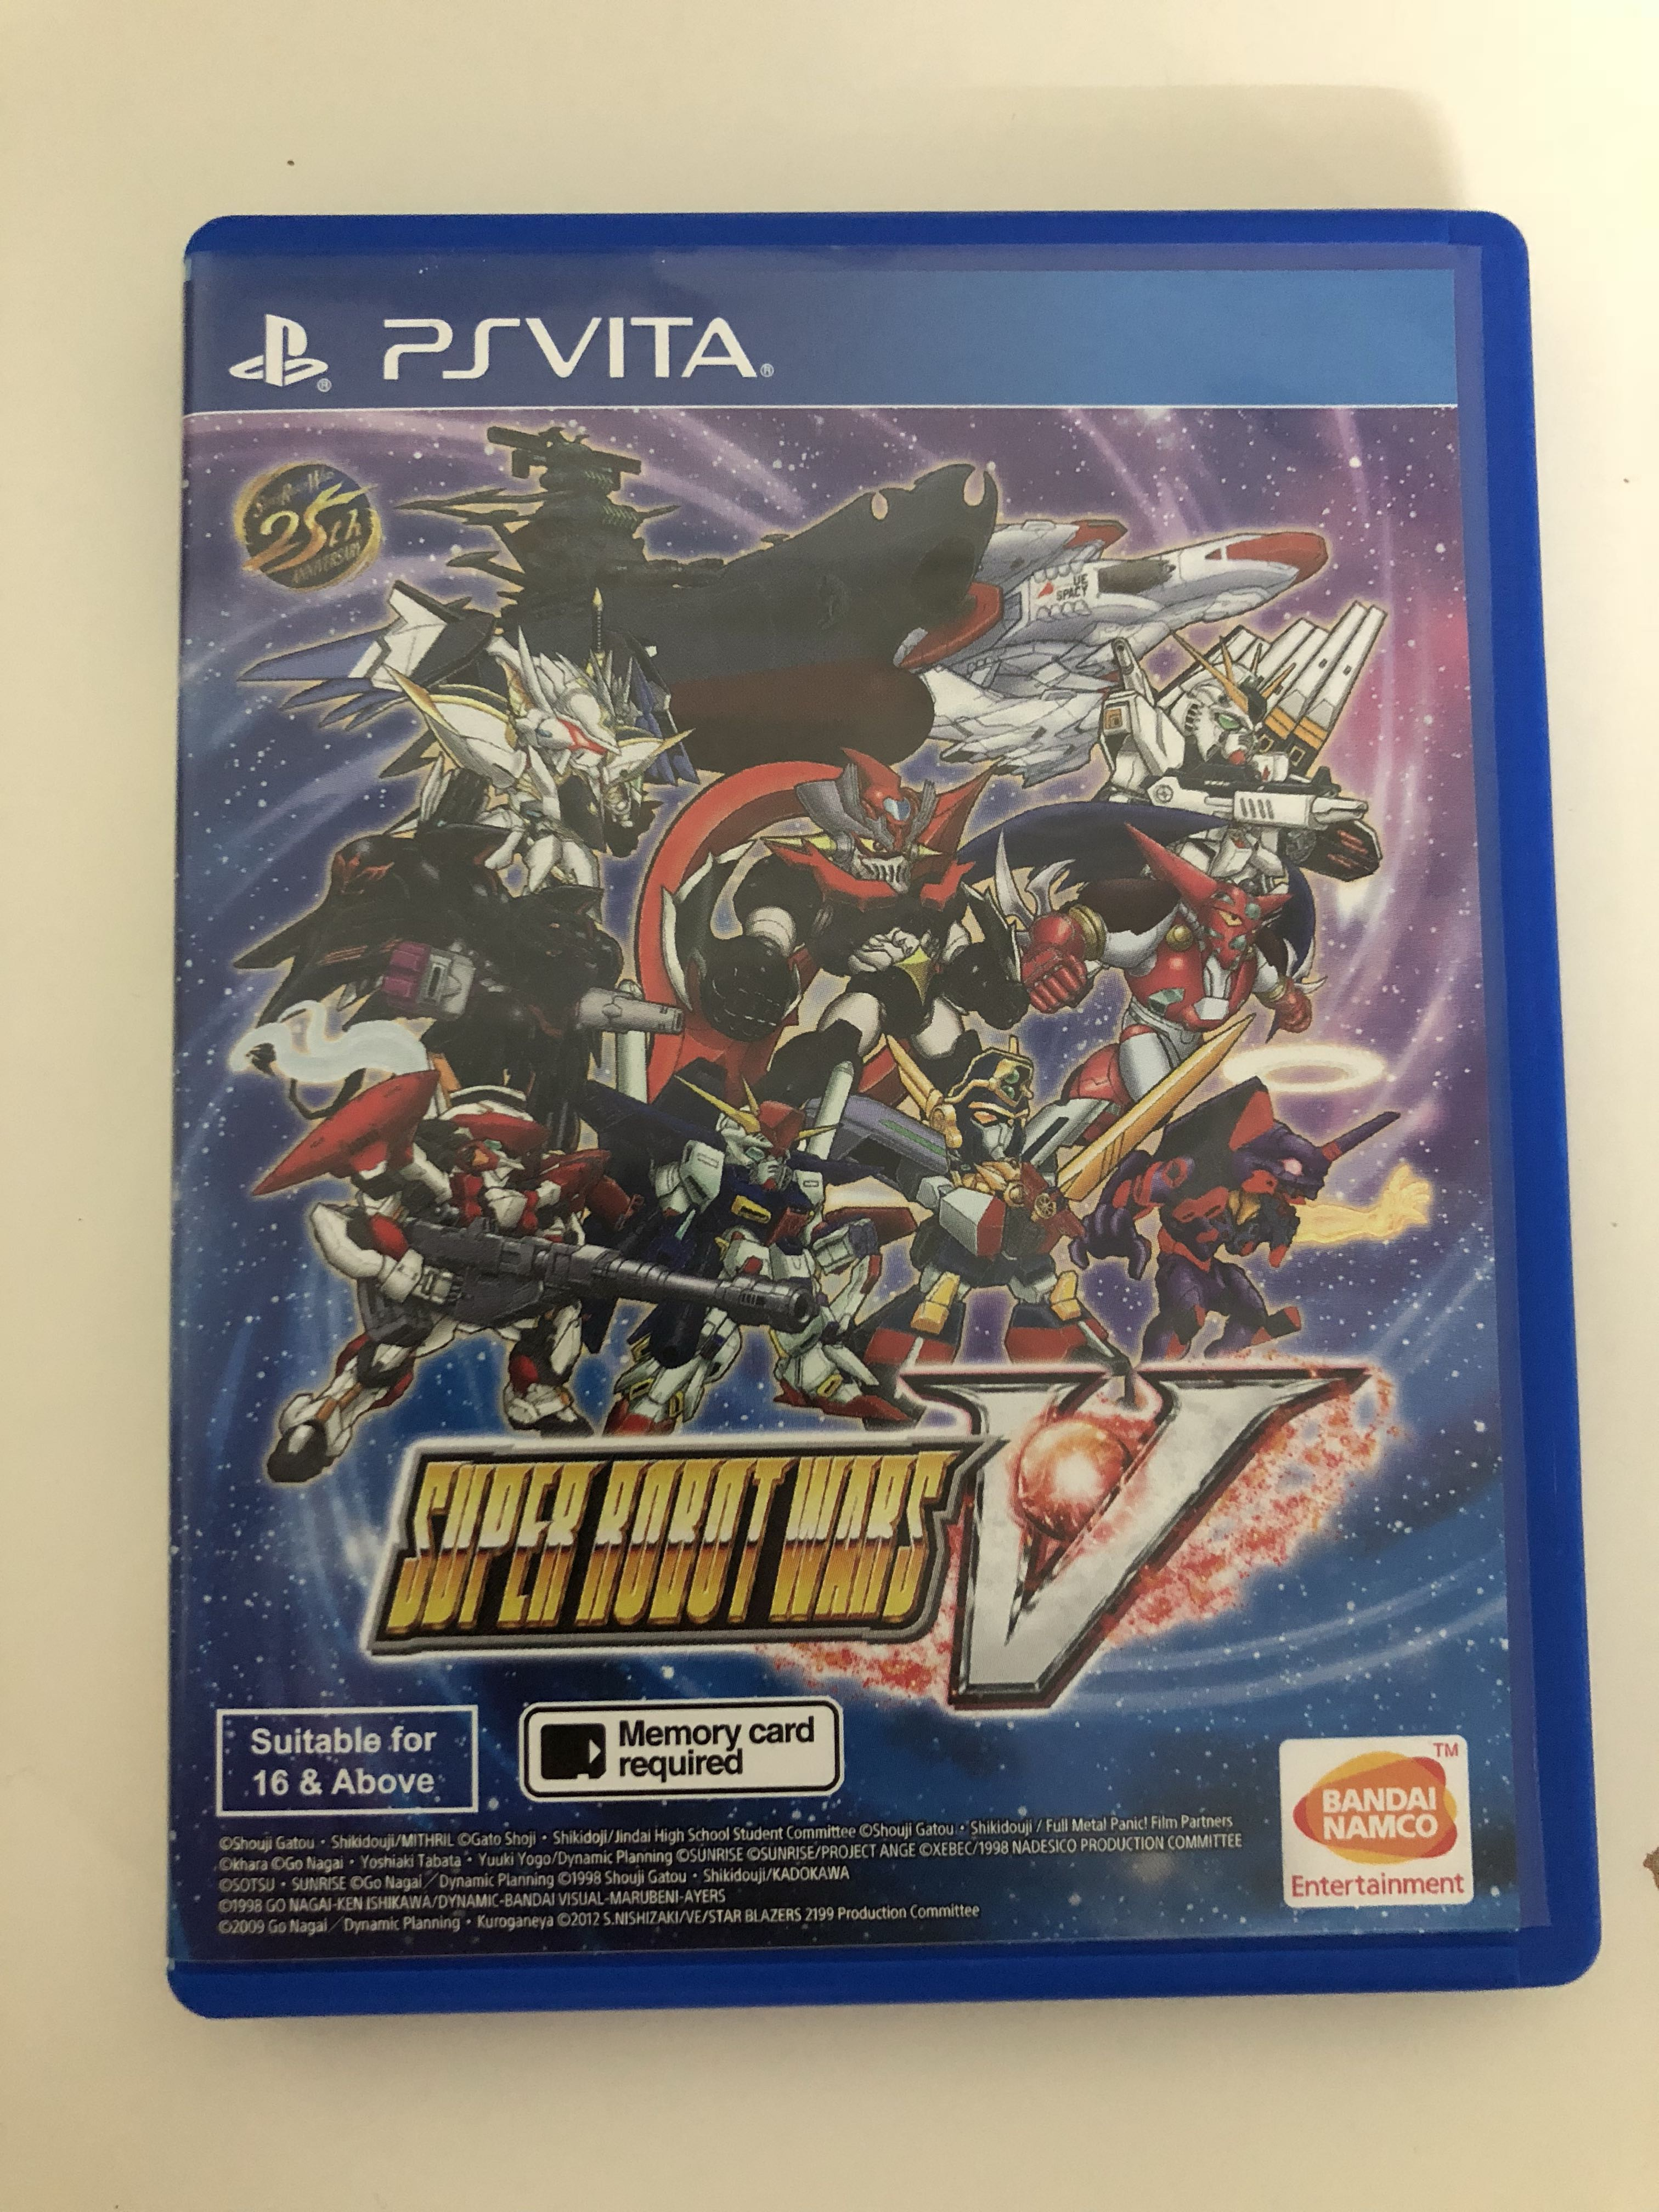 Super Robot Wars V (PS Vita) - Japanese Voice, English